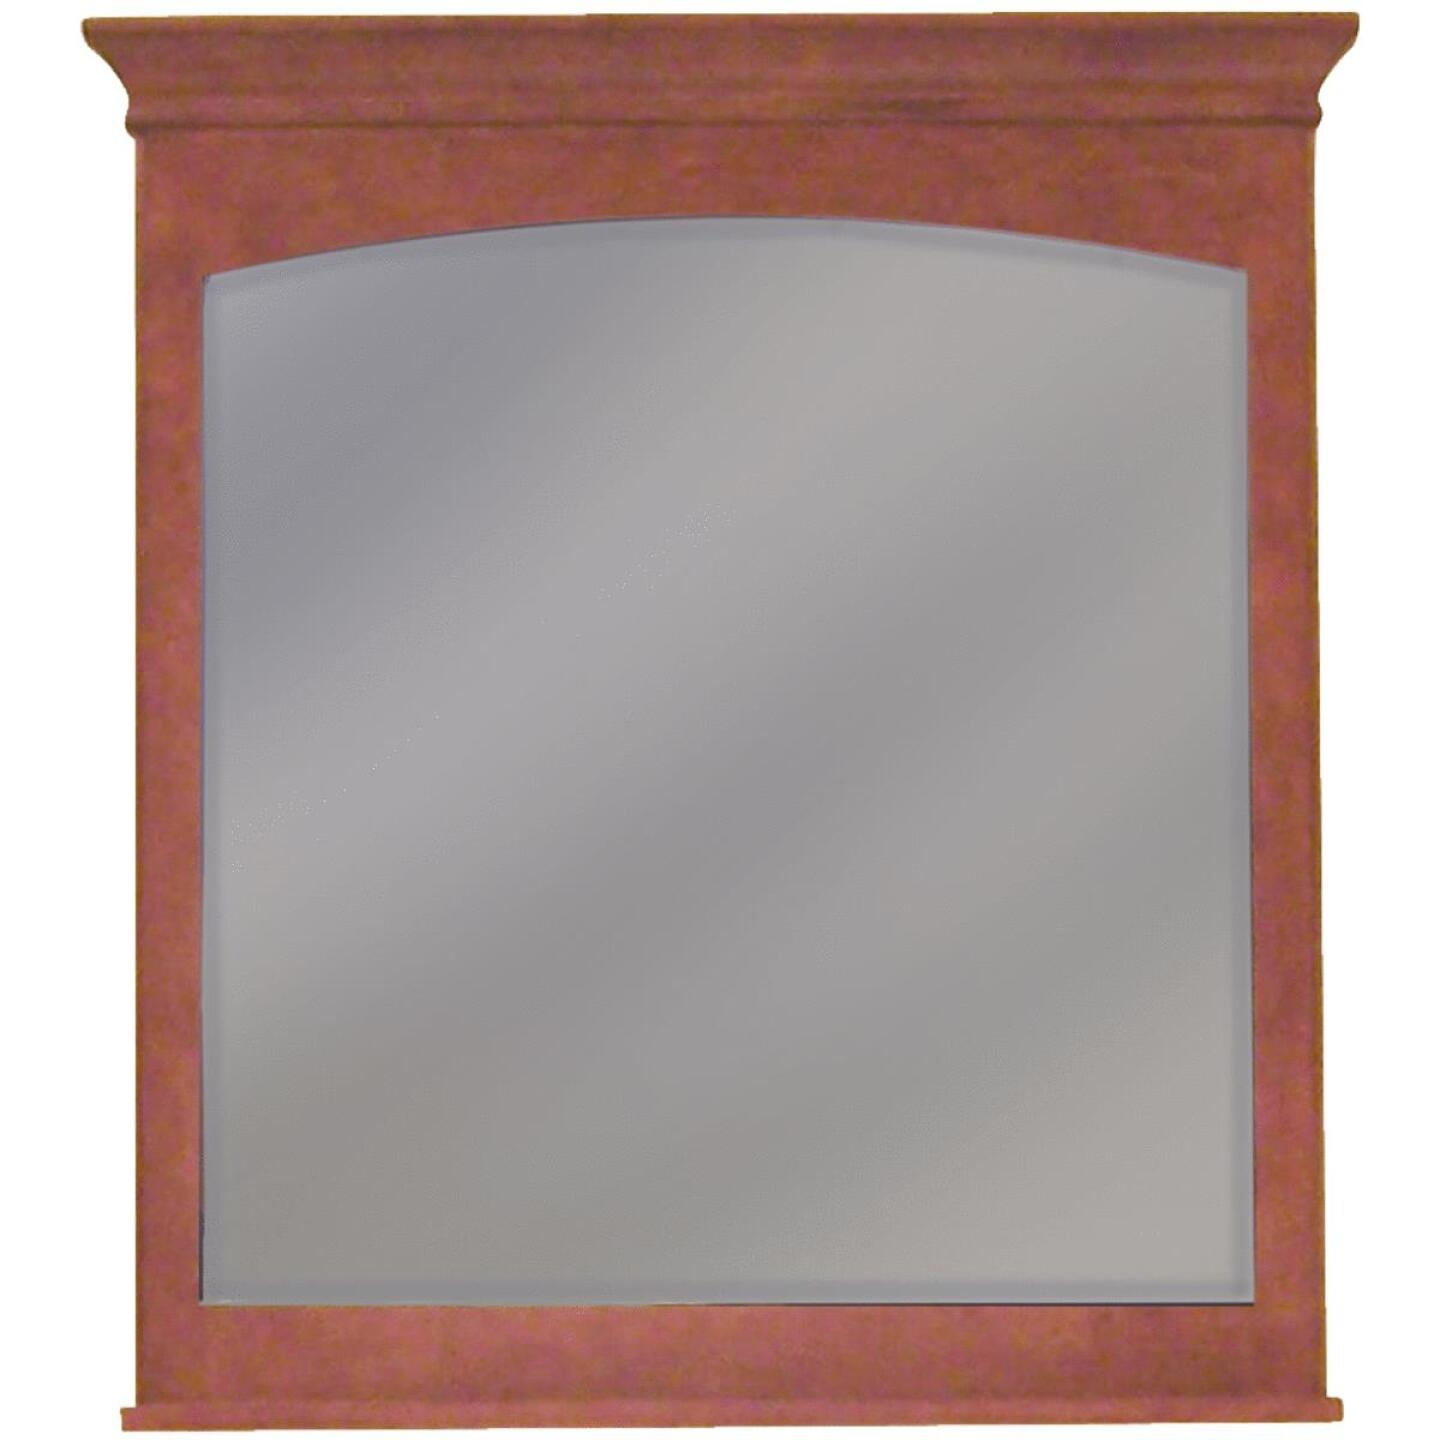 Sunny Wood Expressions Cinnamon 36 In. W x 40 In. H Vanity Mirror Image 1